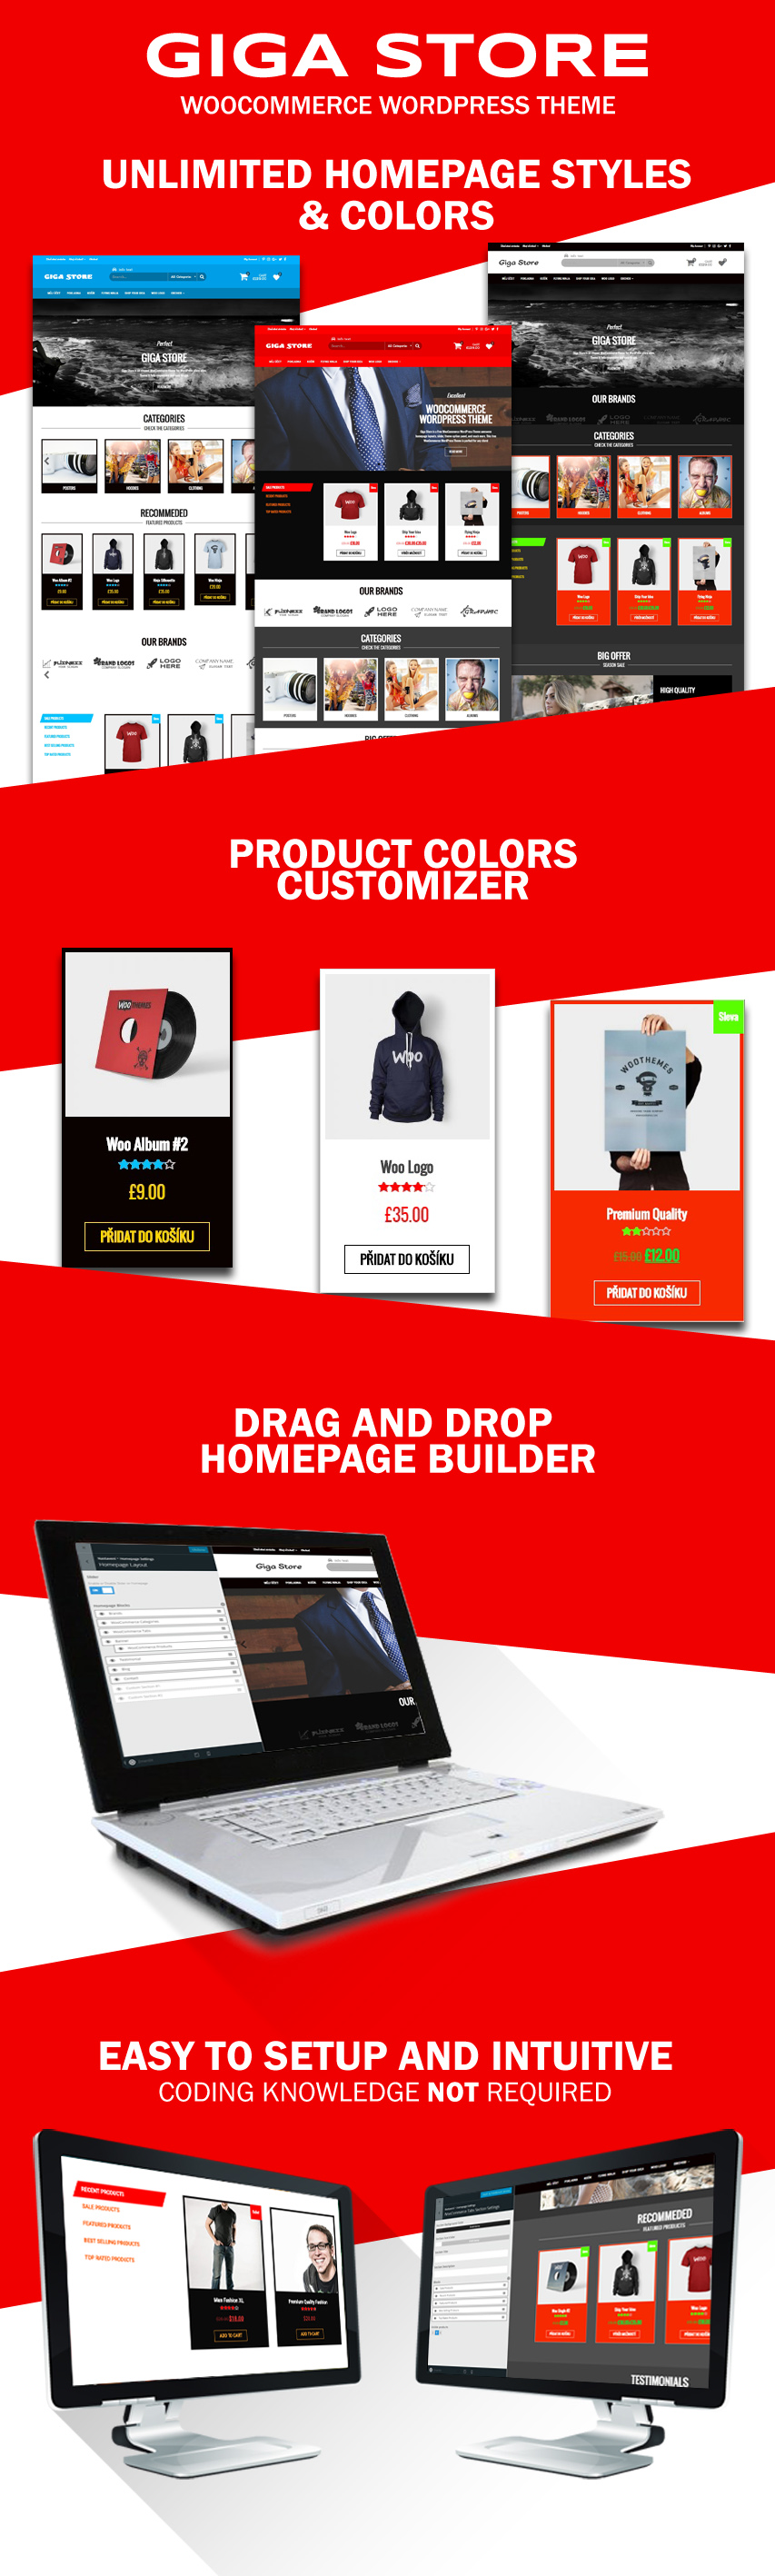 giga store - woocommerce WordPress Theme